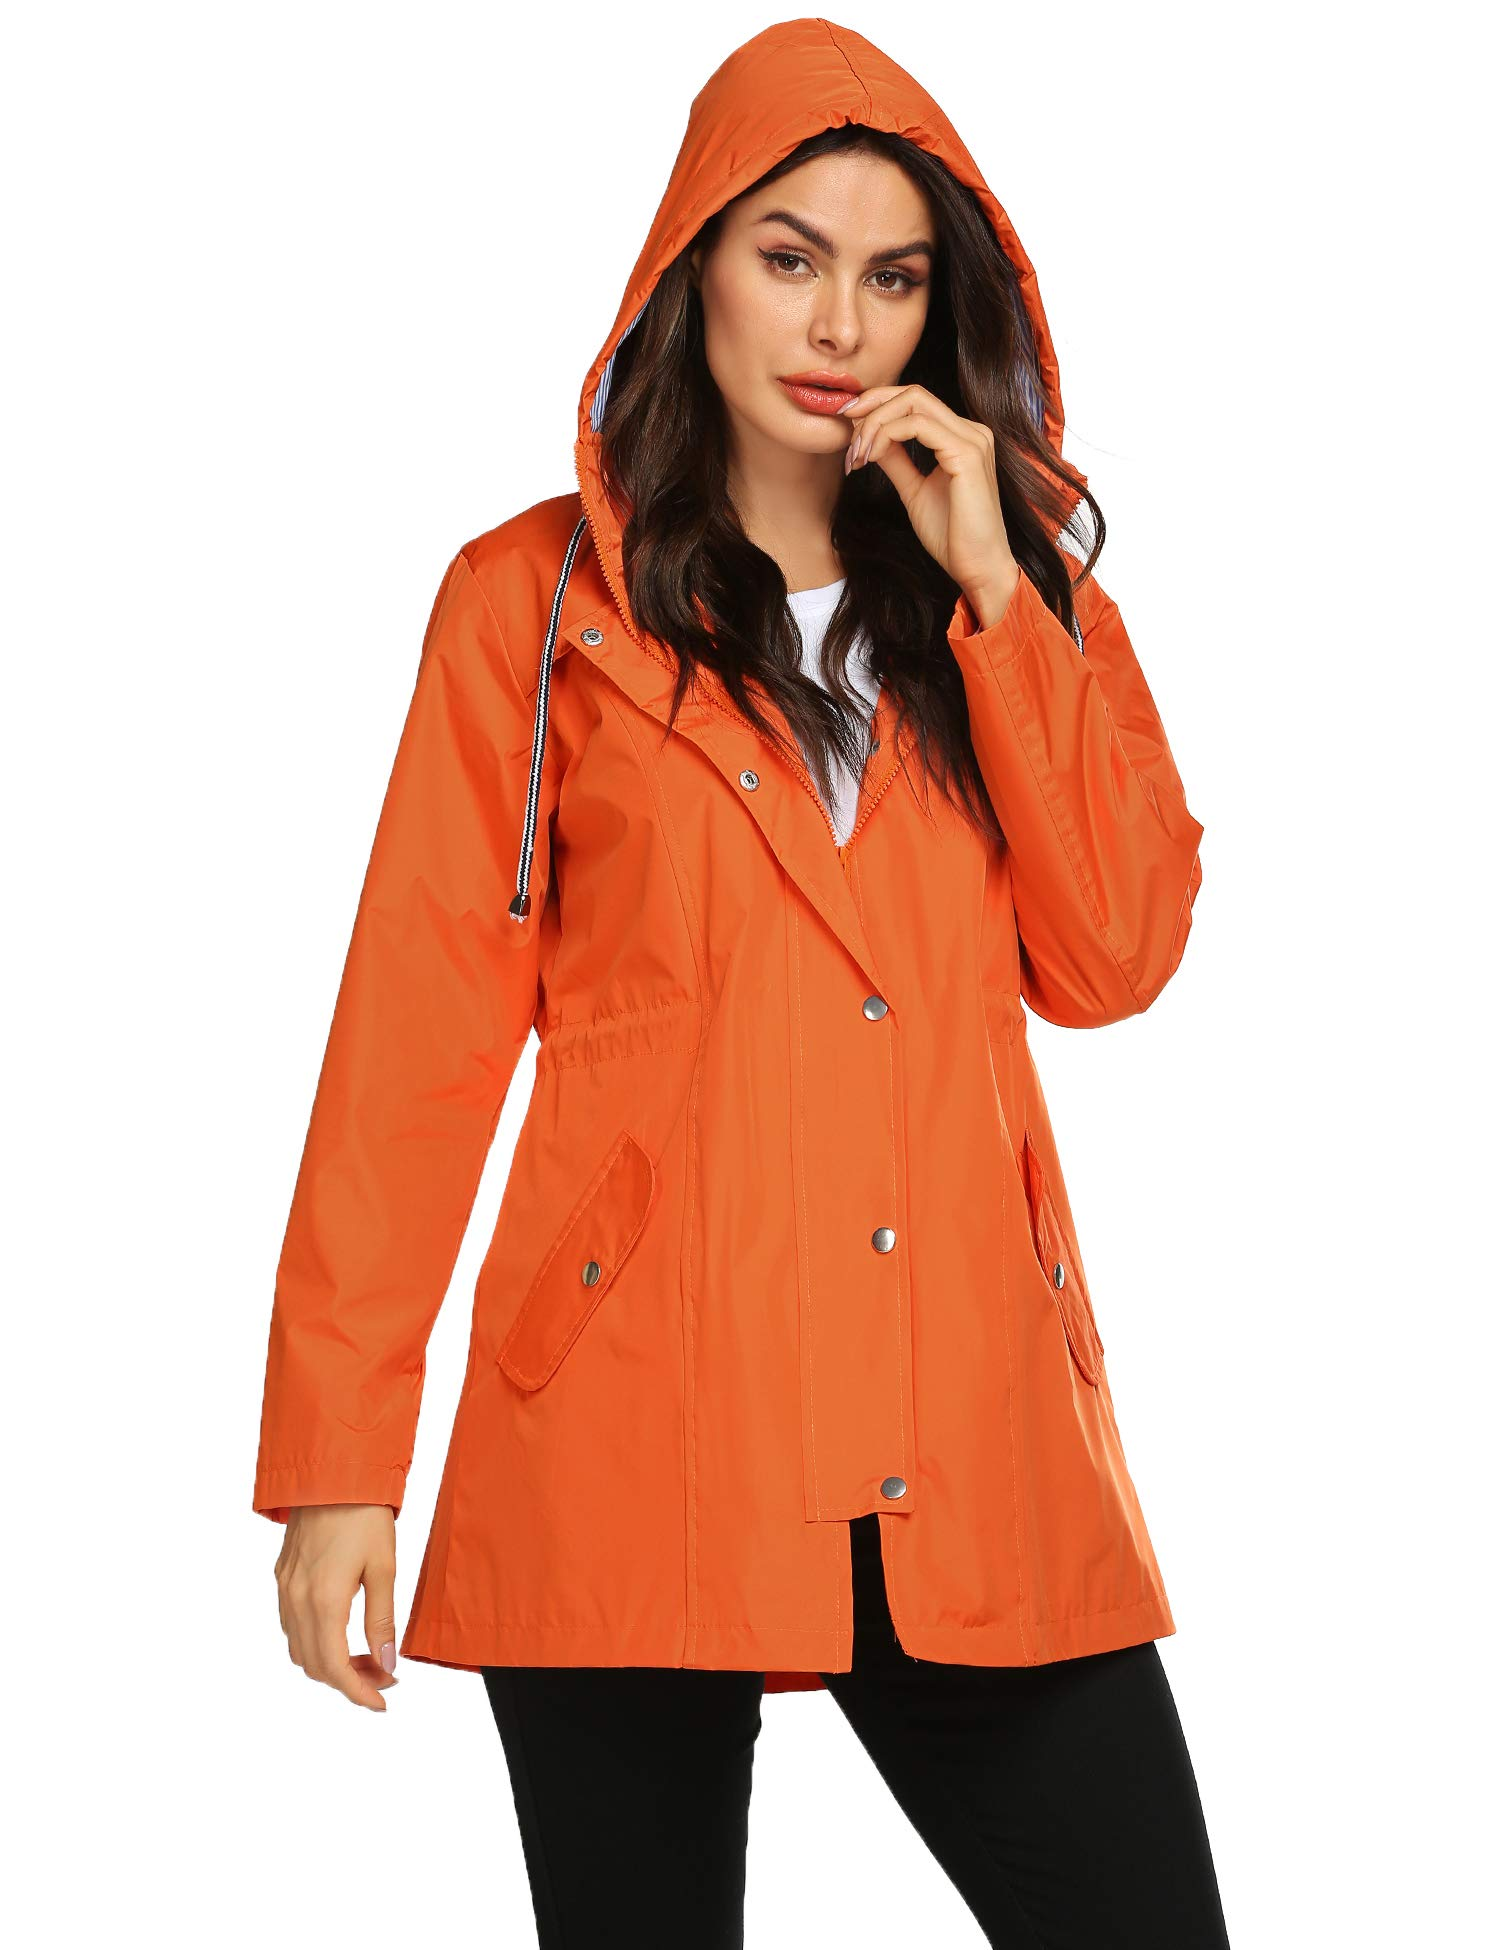 Avoogue Women Raincoat Waterproof Striped Lined Lightweight Jacket with Hood Long Fashion Outdoor Jacket